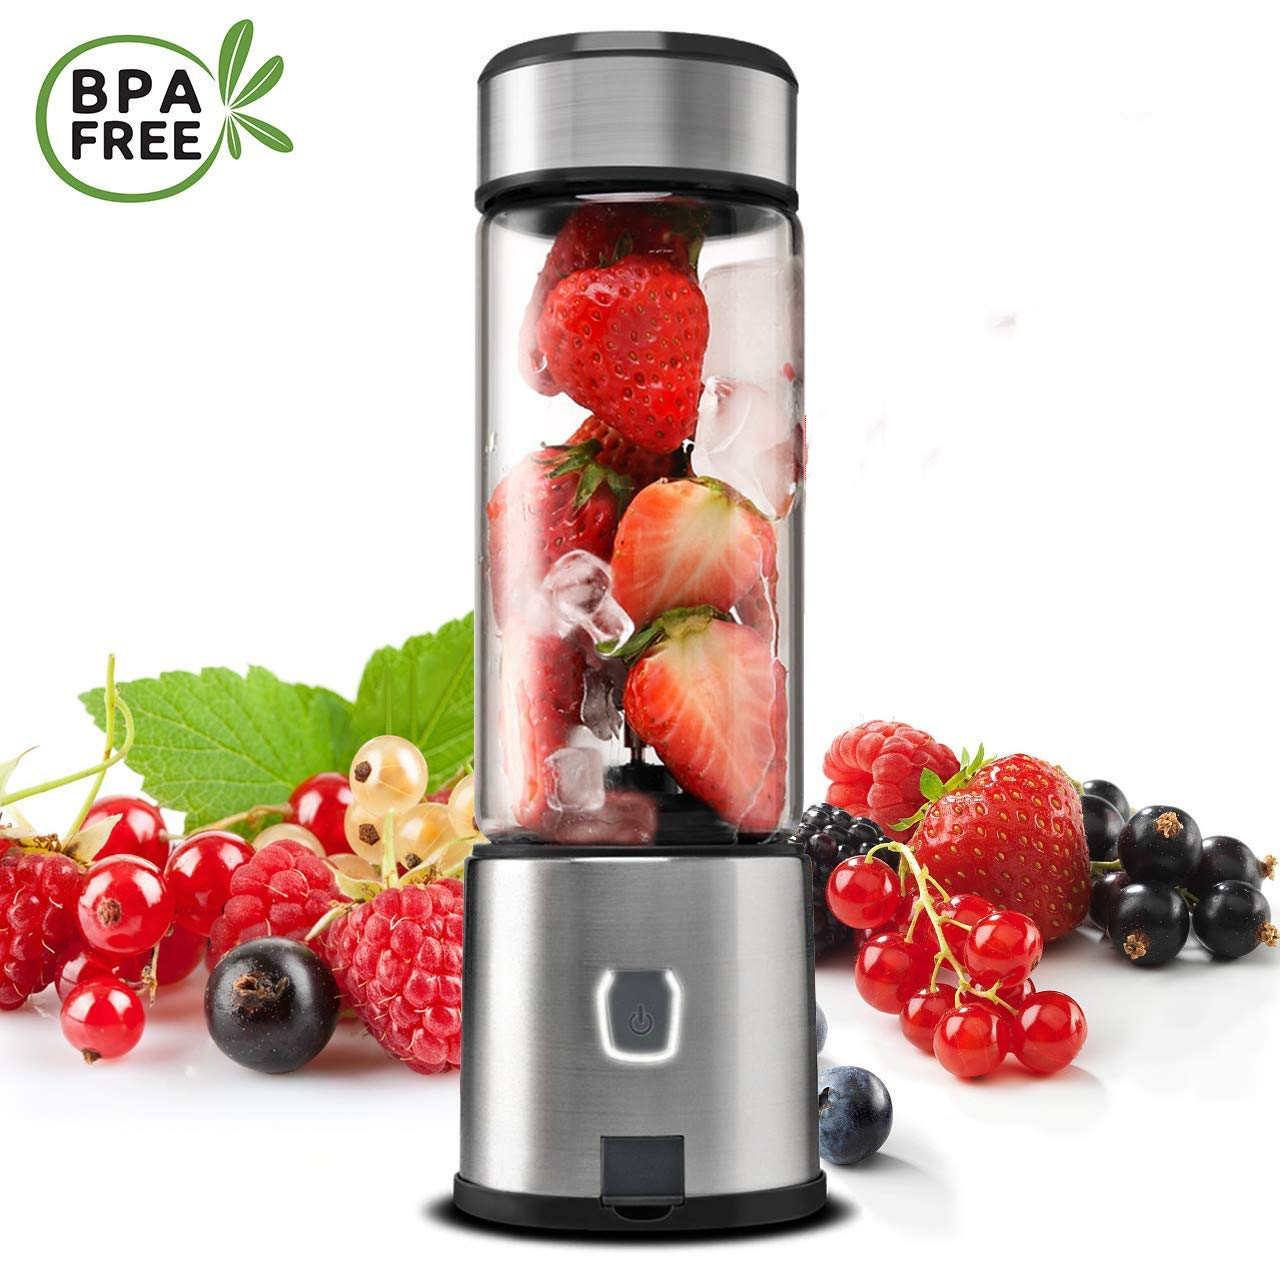 Personal Blender, TOPQSC Portable Blender 15oz USB Rechargeable 5200mAh, Smoothie Blender with Durable Glass, Stainless blades 16500rpm, Perfect for Shakes,Smoothies and Baby Food, FDA/ BPA Free (Black) by TOPQSC